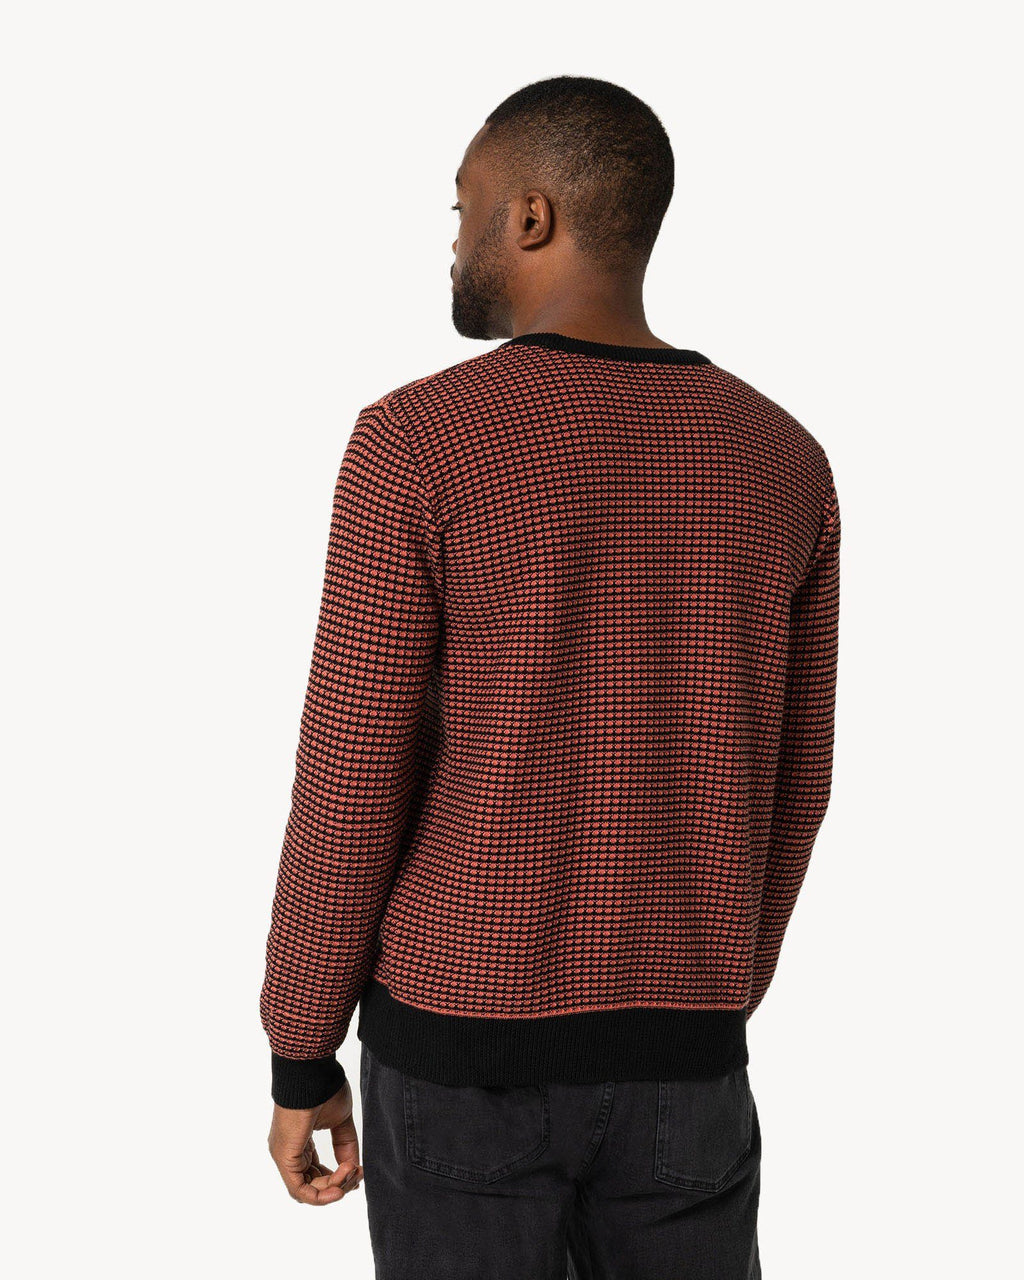 variant_1 | EN Men Knit Jumper Red Black Loose | DE Herren Strickpullover Rot Schwarz